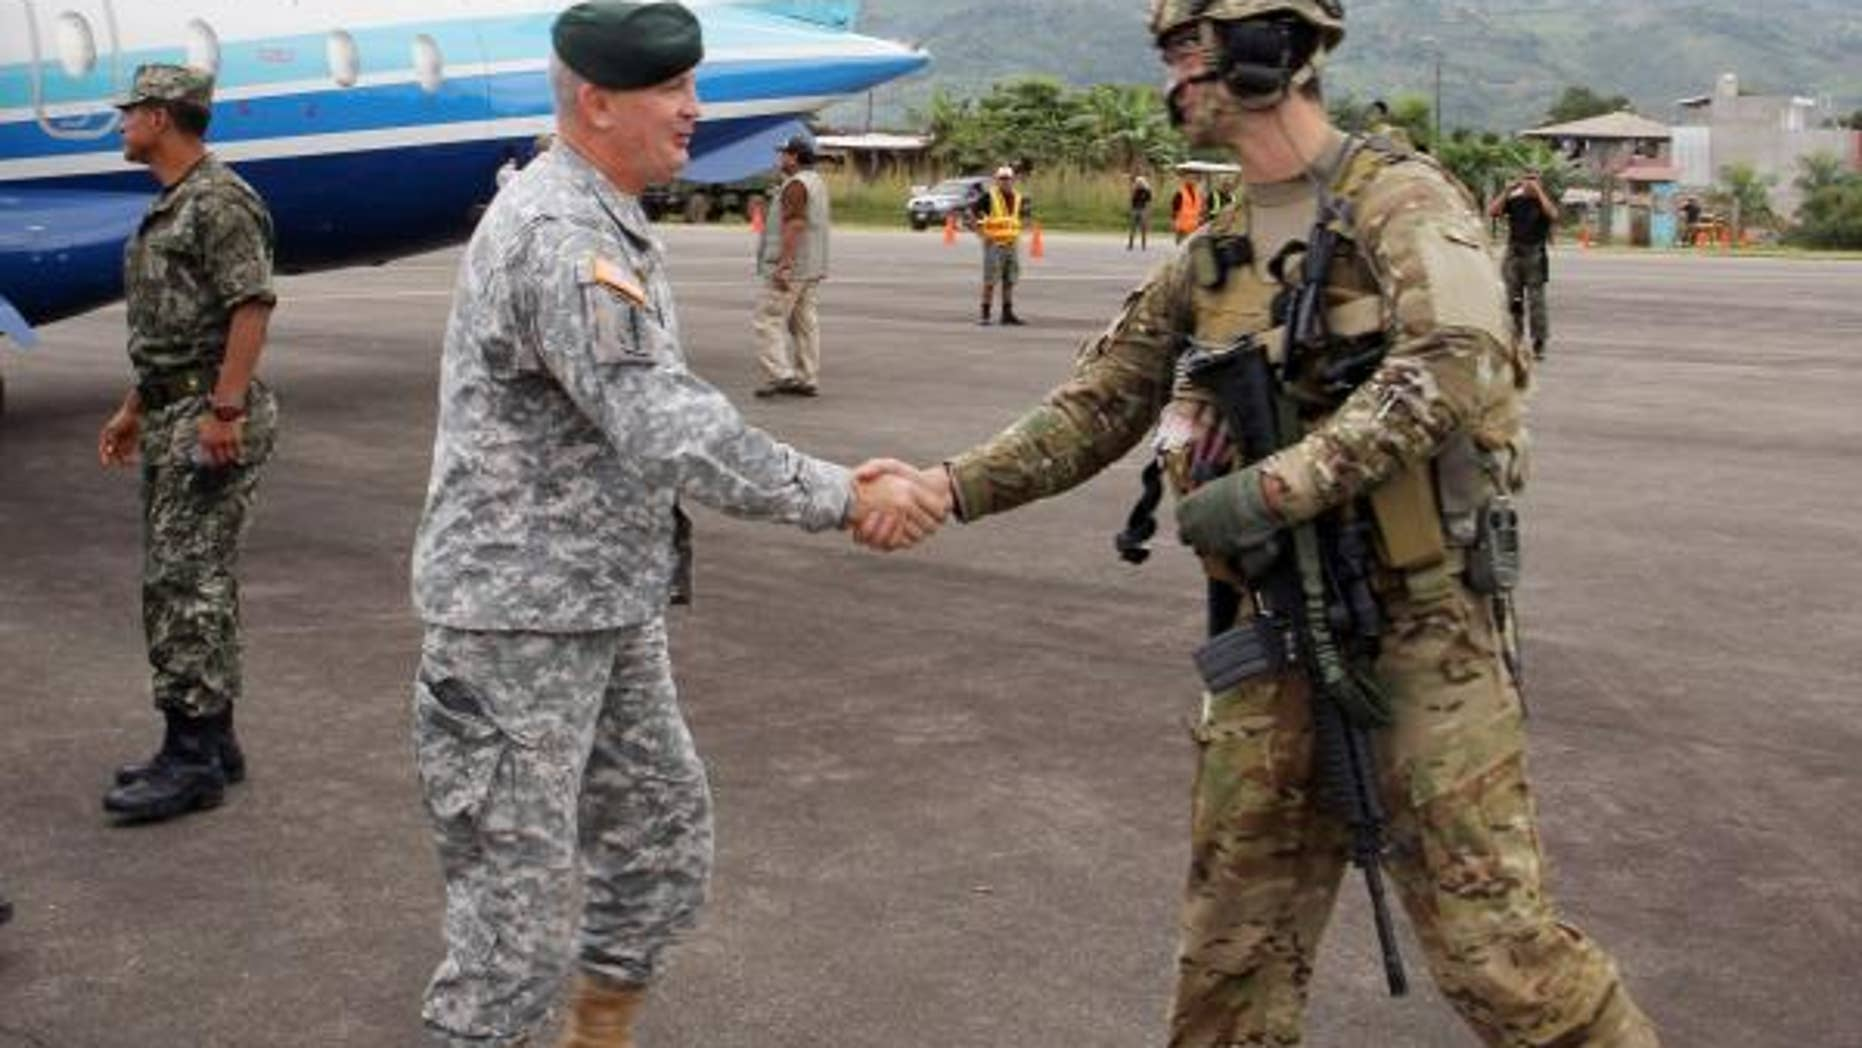 (Left) Army Brig. Gen. Sean P. Mulholland, the commander of Special Operations Command South, greets U.S. servicemembers May 7 to Lima, Peru. During his visit to the region, Mulholland spoke with Peruvian military commanders to discuss a range of topics including military collaboration, improving regional security as well as observing an ongoing U.S.-Peruvian military exercise. As the special operations component for U.S. Southern Command (USSOUTHCOM), SOCSOUTH, headquartered at Homestead Air Reserve Base, Fla., assists special operations partners across Central and South America and the Caribbean to build its military capacity. (Department of Defense photo by Army Maj. Emanuel Ortiz, Special Operations Command South Public Affairs Office)